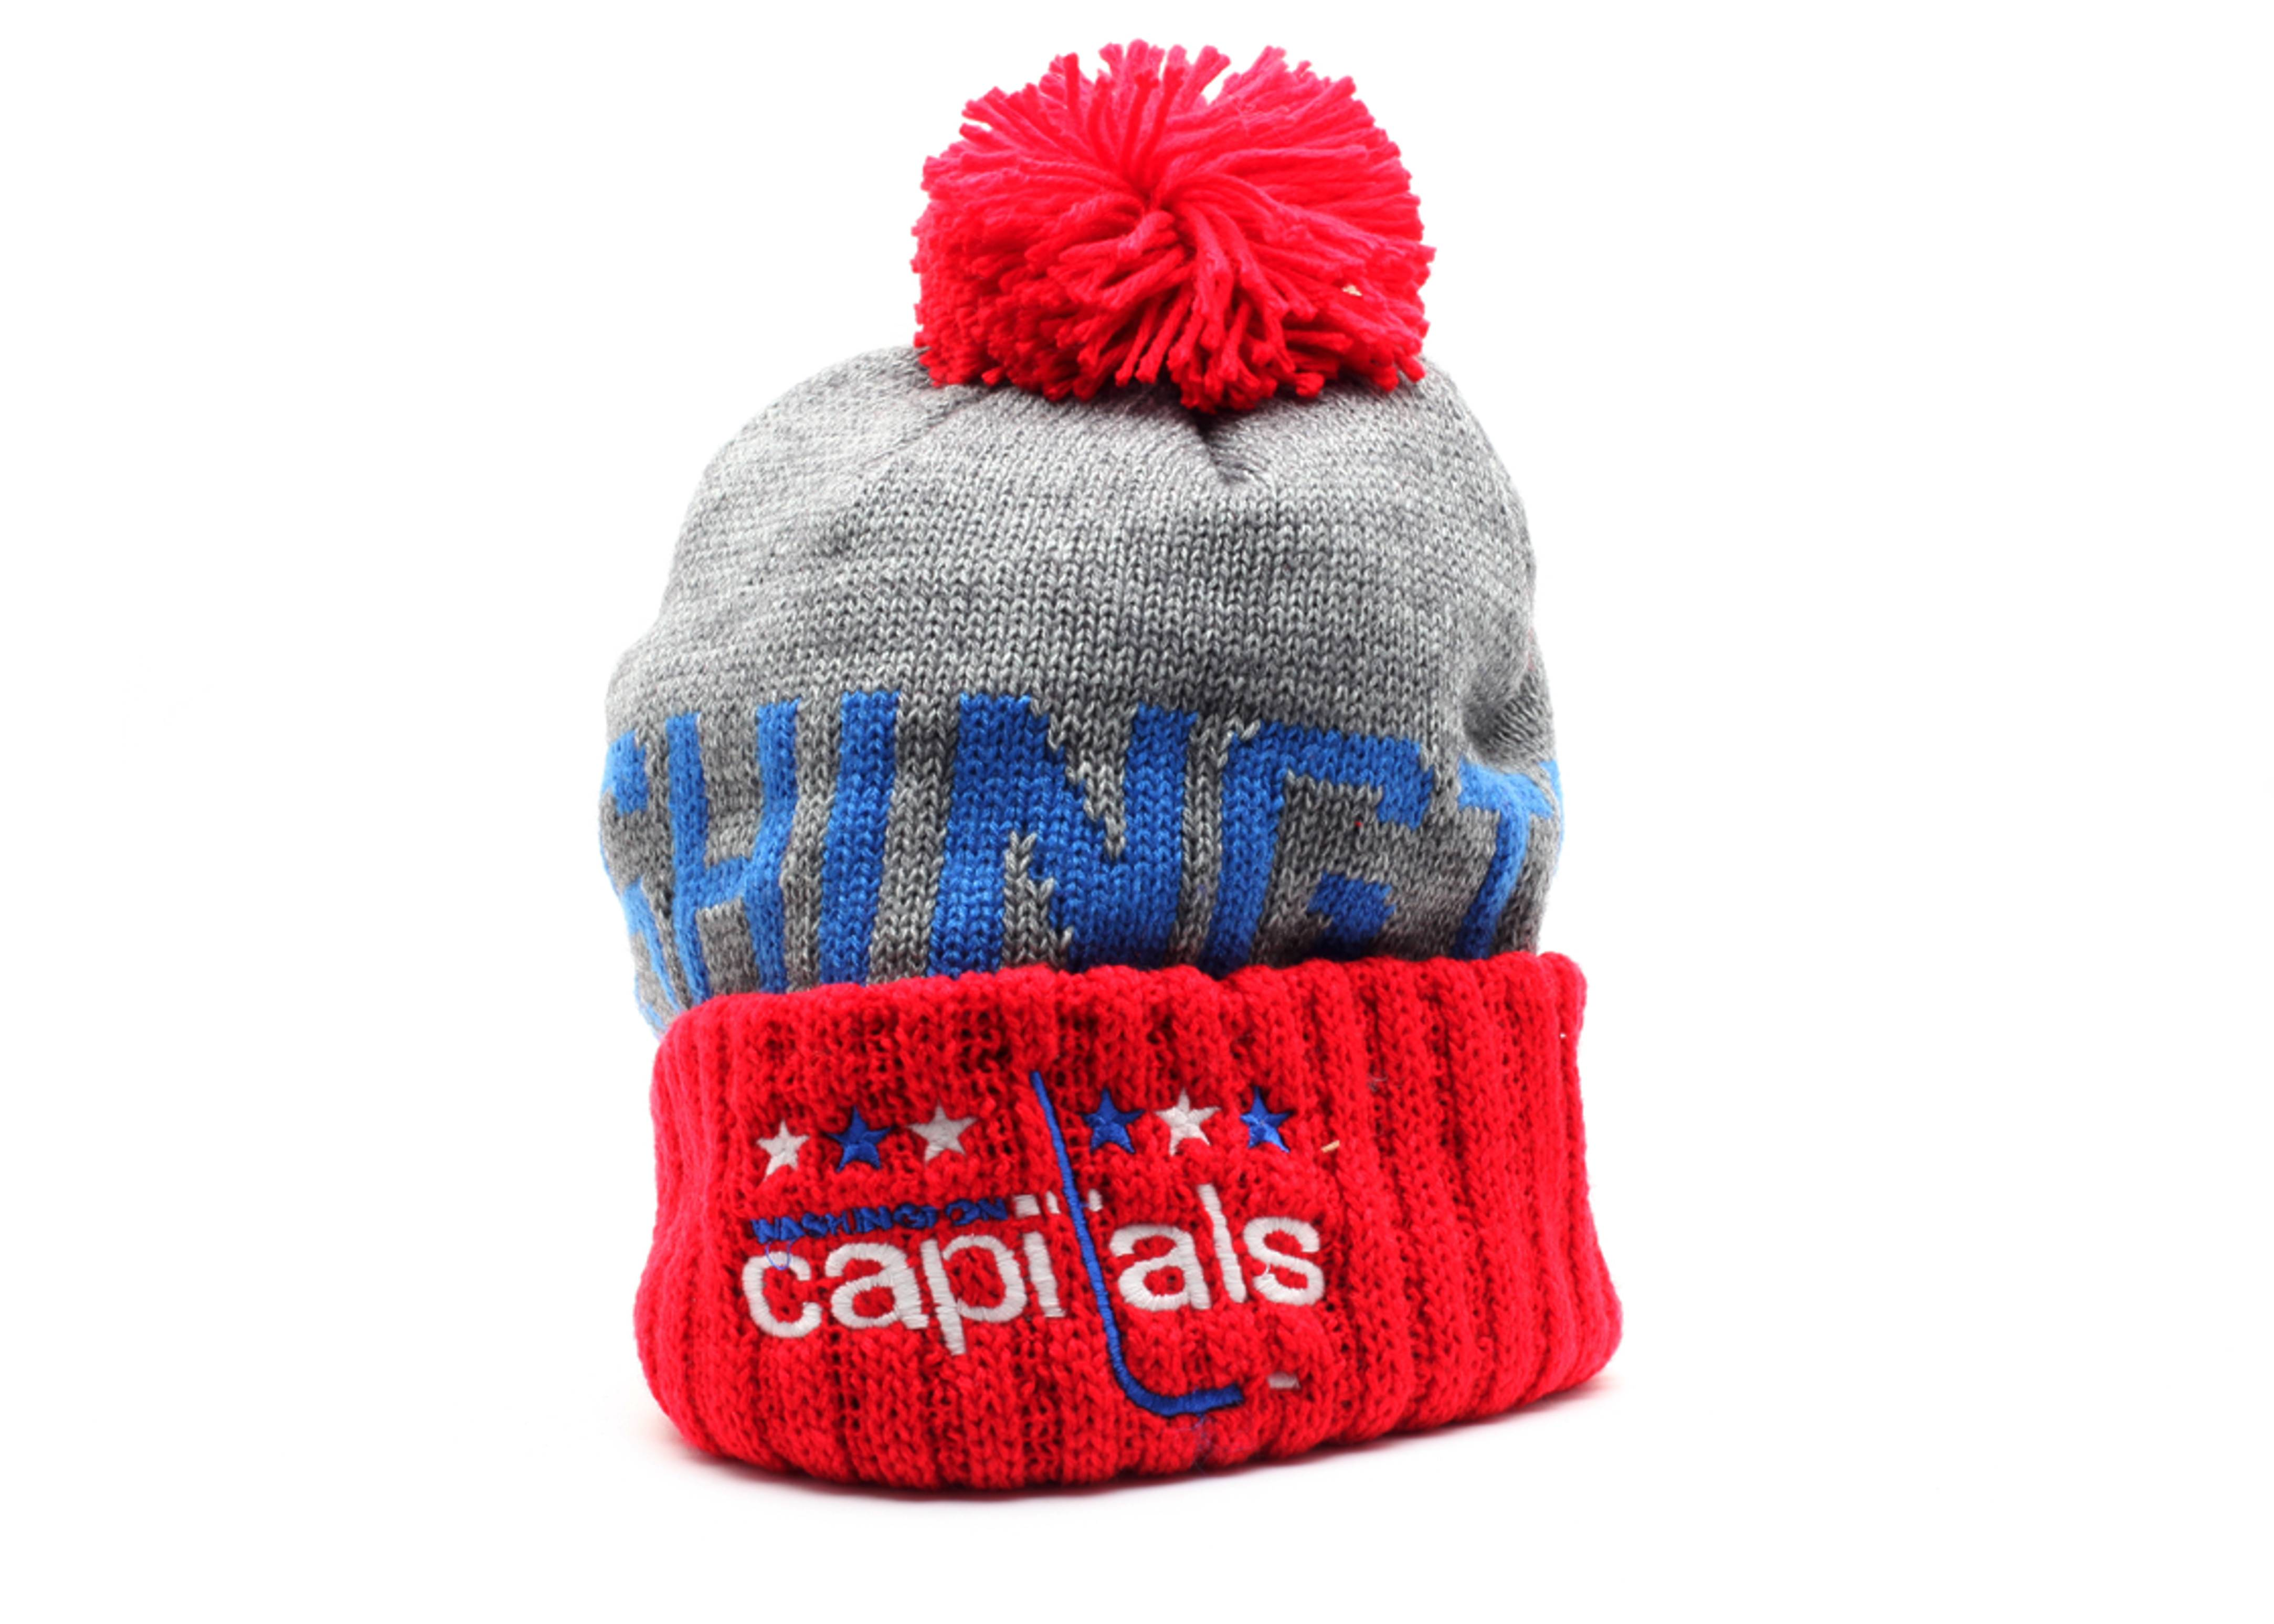 55540751be1 Washington Capitals Cuffed Pom Knit Beanie - Mitchell   Ness -  ke33gte7capit - gray red-blue